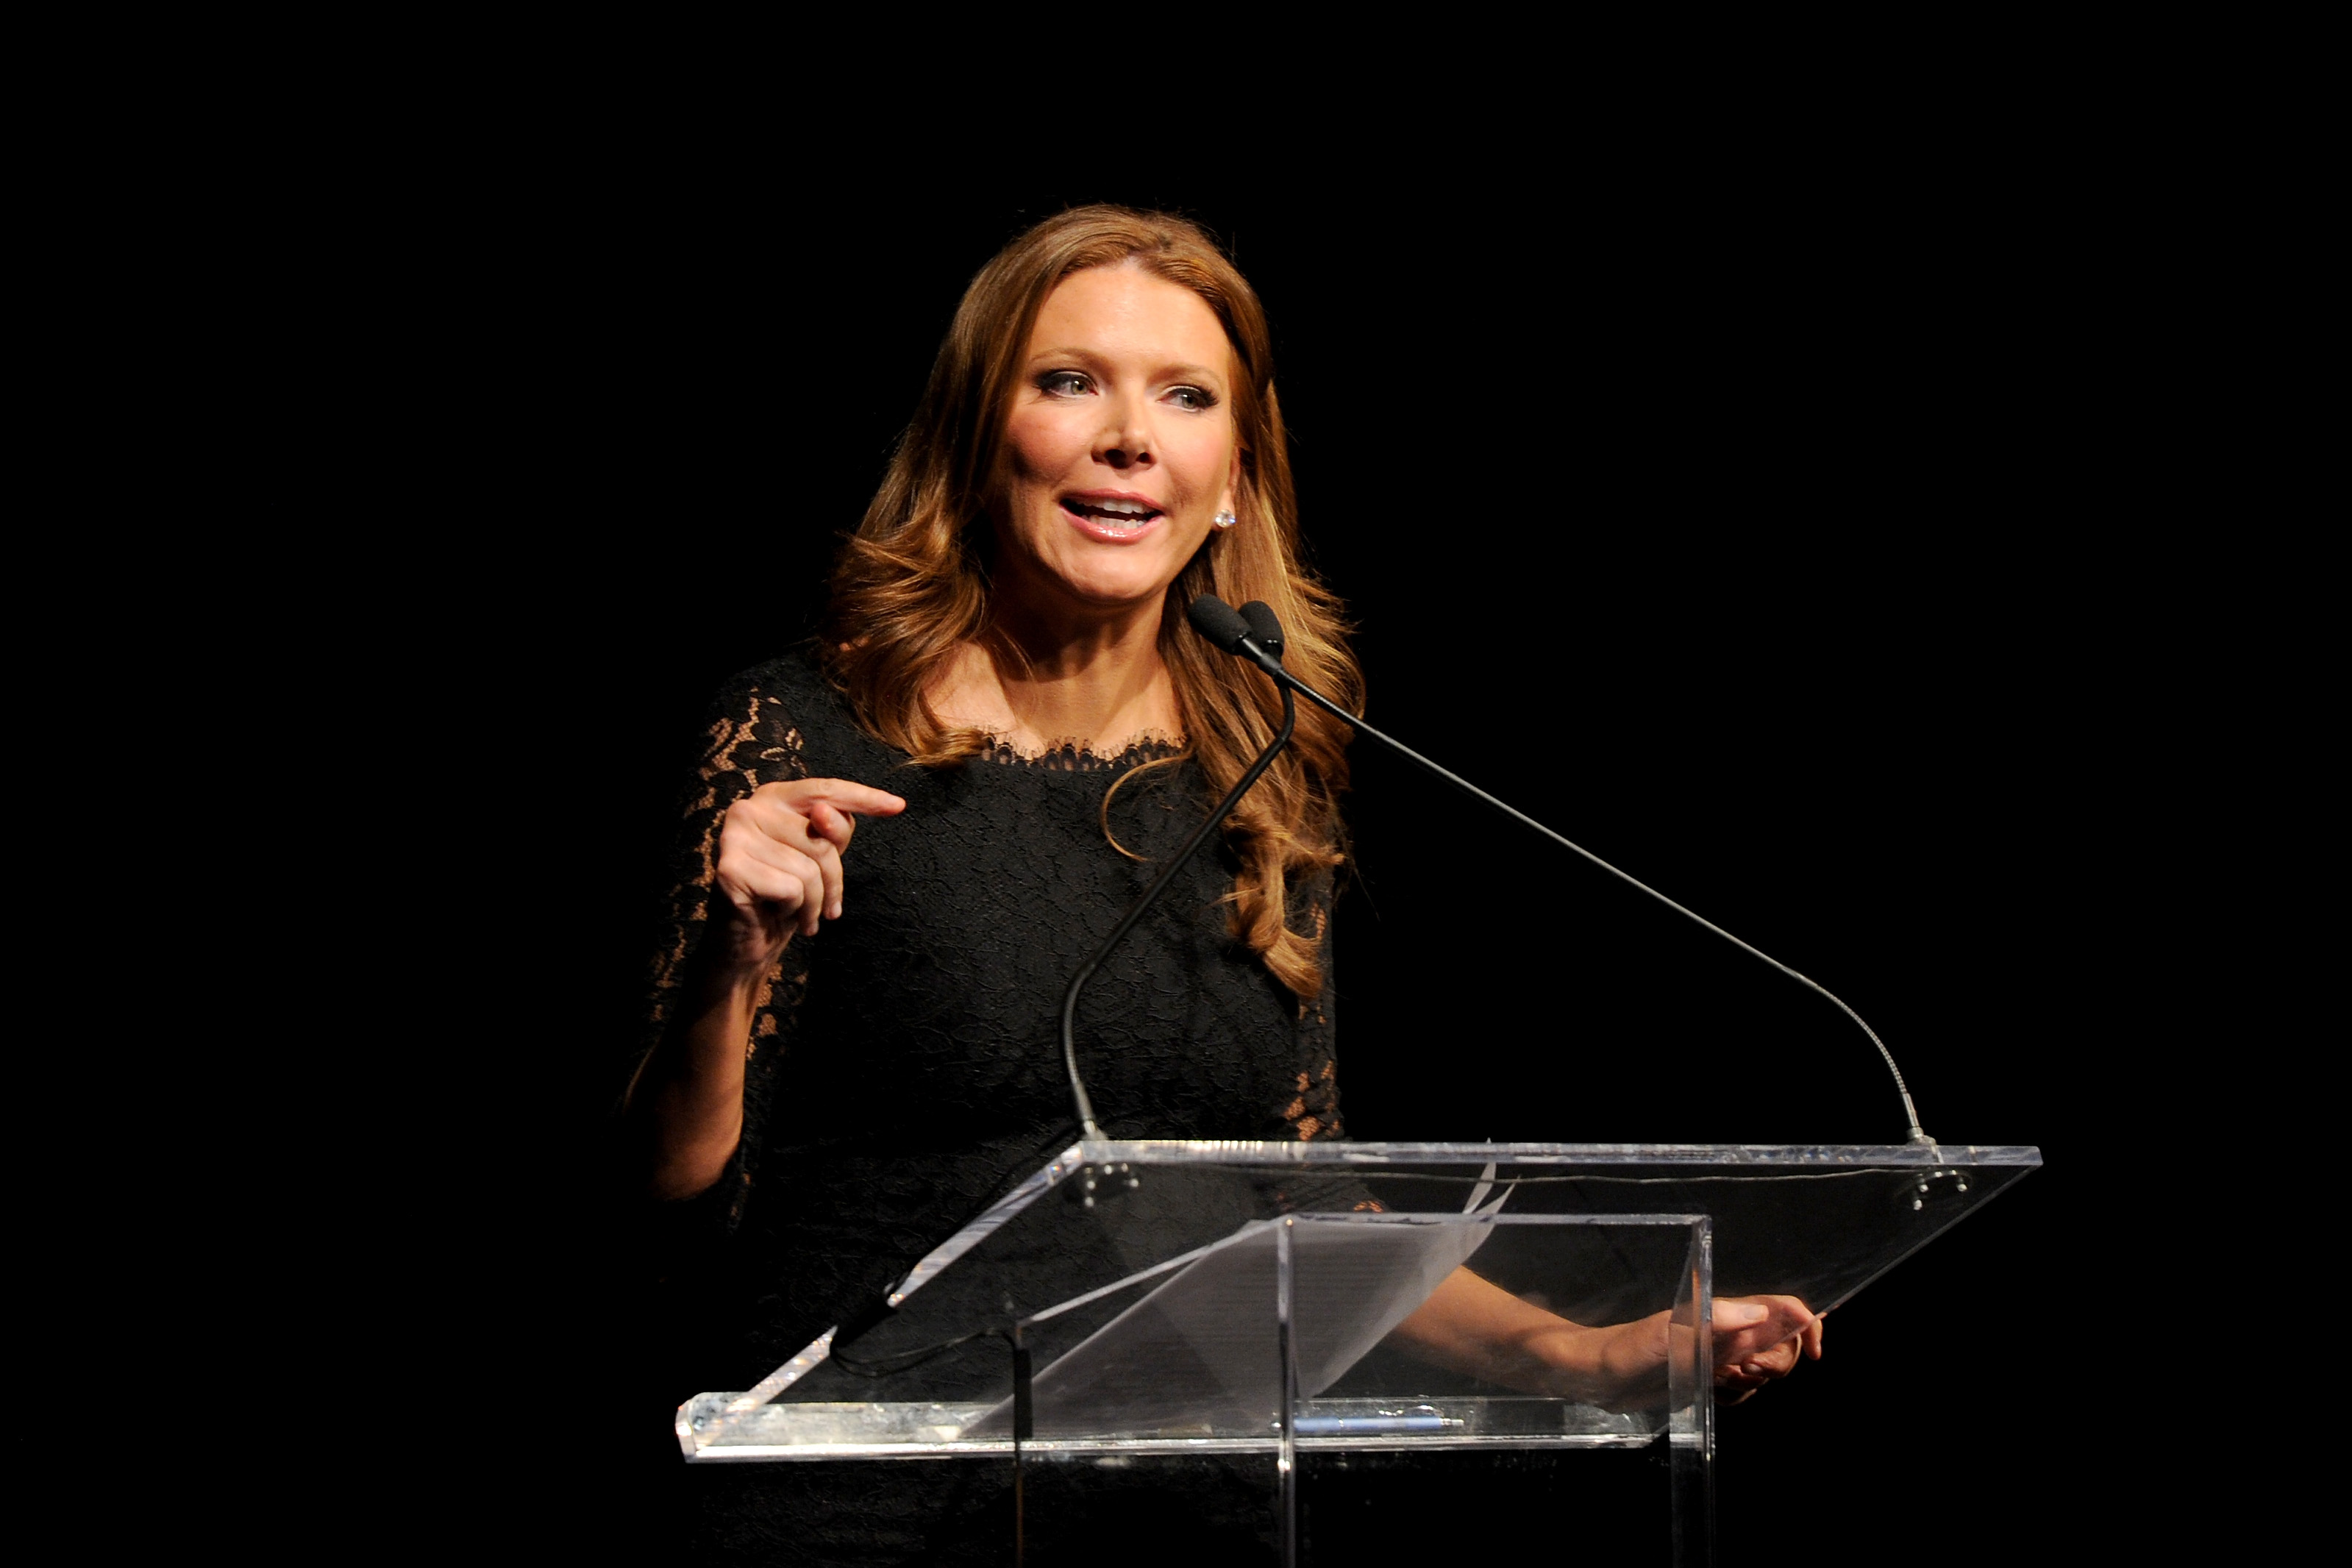 NEW YORK, NY - MARCH 02: Trish Regan speaks onstage at Jefferson Awards Foundation 2016 NYC National Ceremony on March 2, 2016, at Gotham Hall in New York City. (Photo by Craig Barritt/Getty Images for Jefferson Awards Foundation)